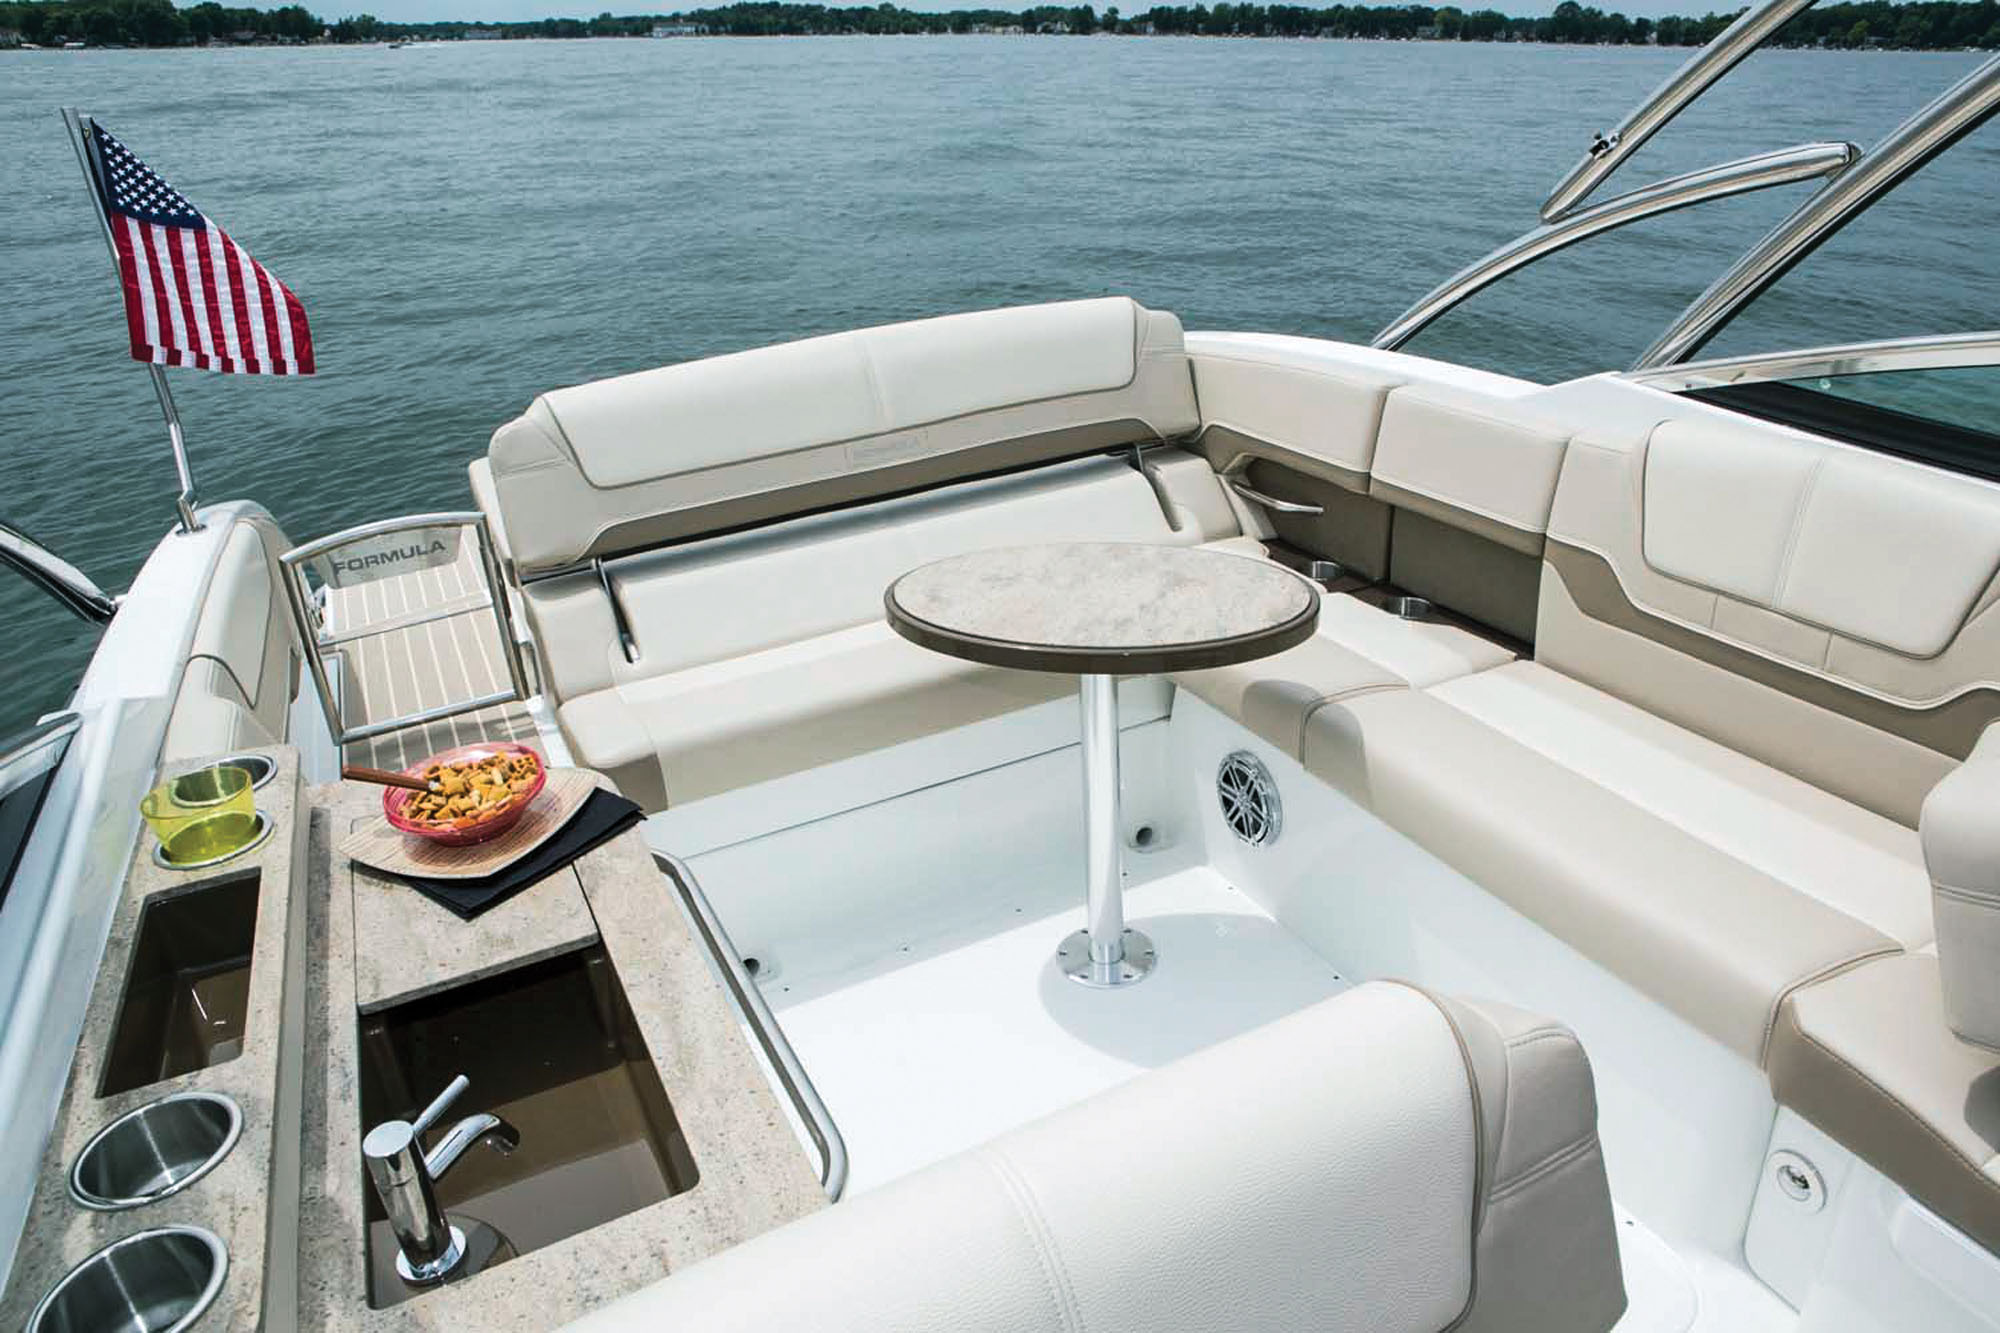 Pictures of Formula 290 Bowrider